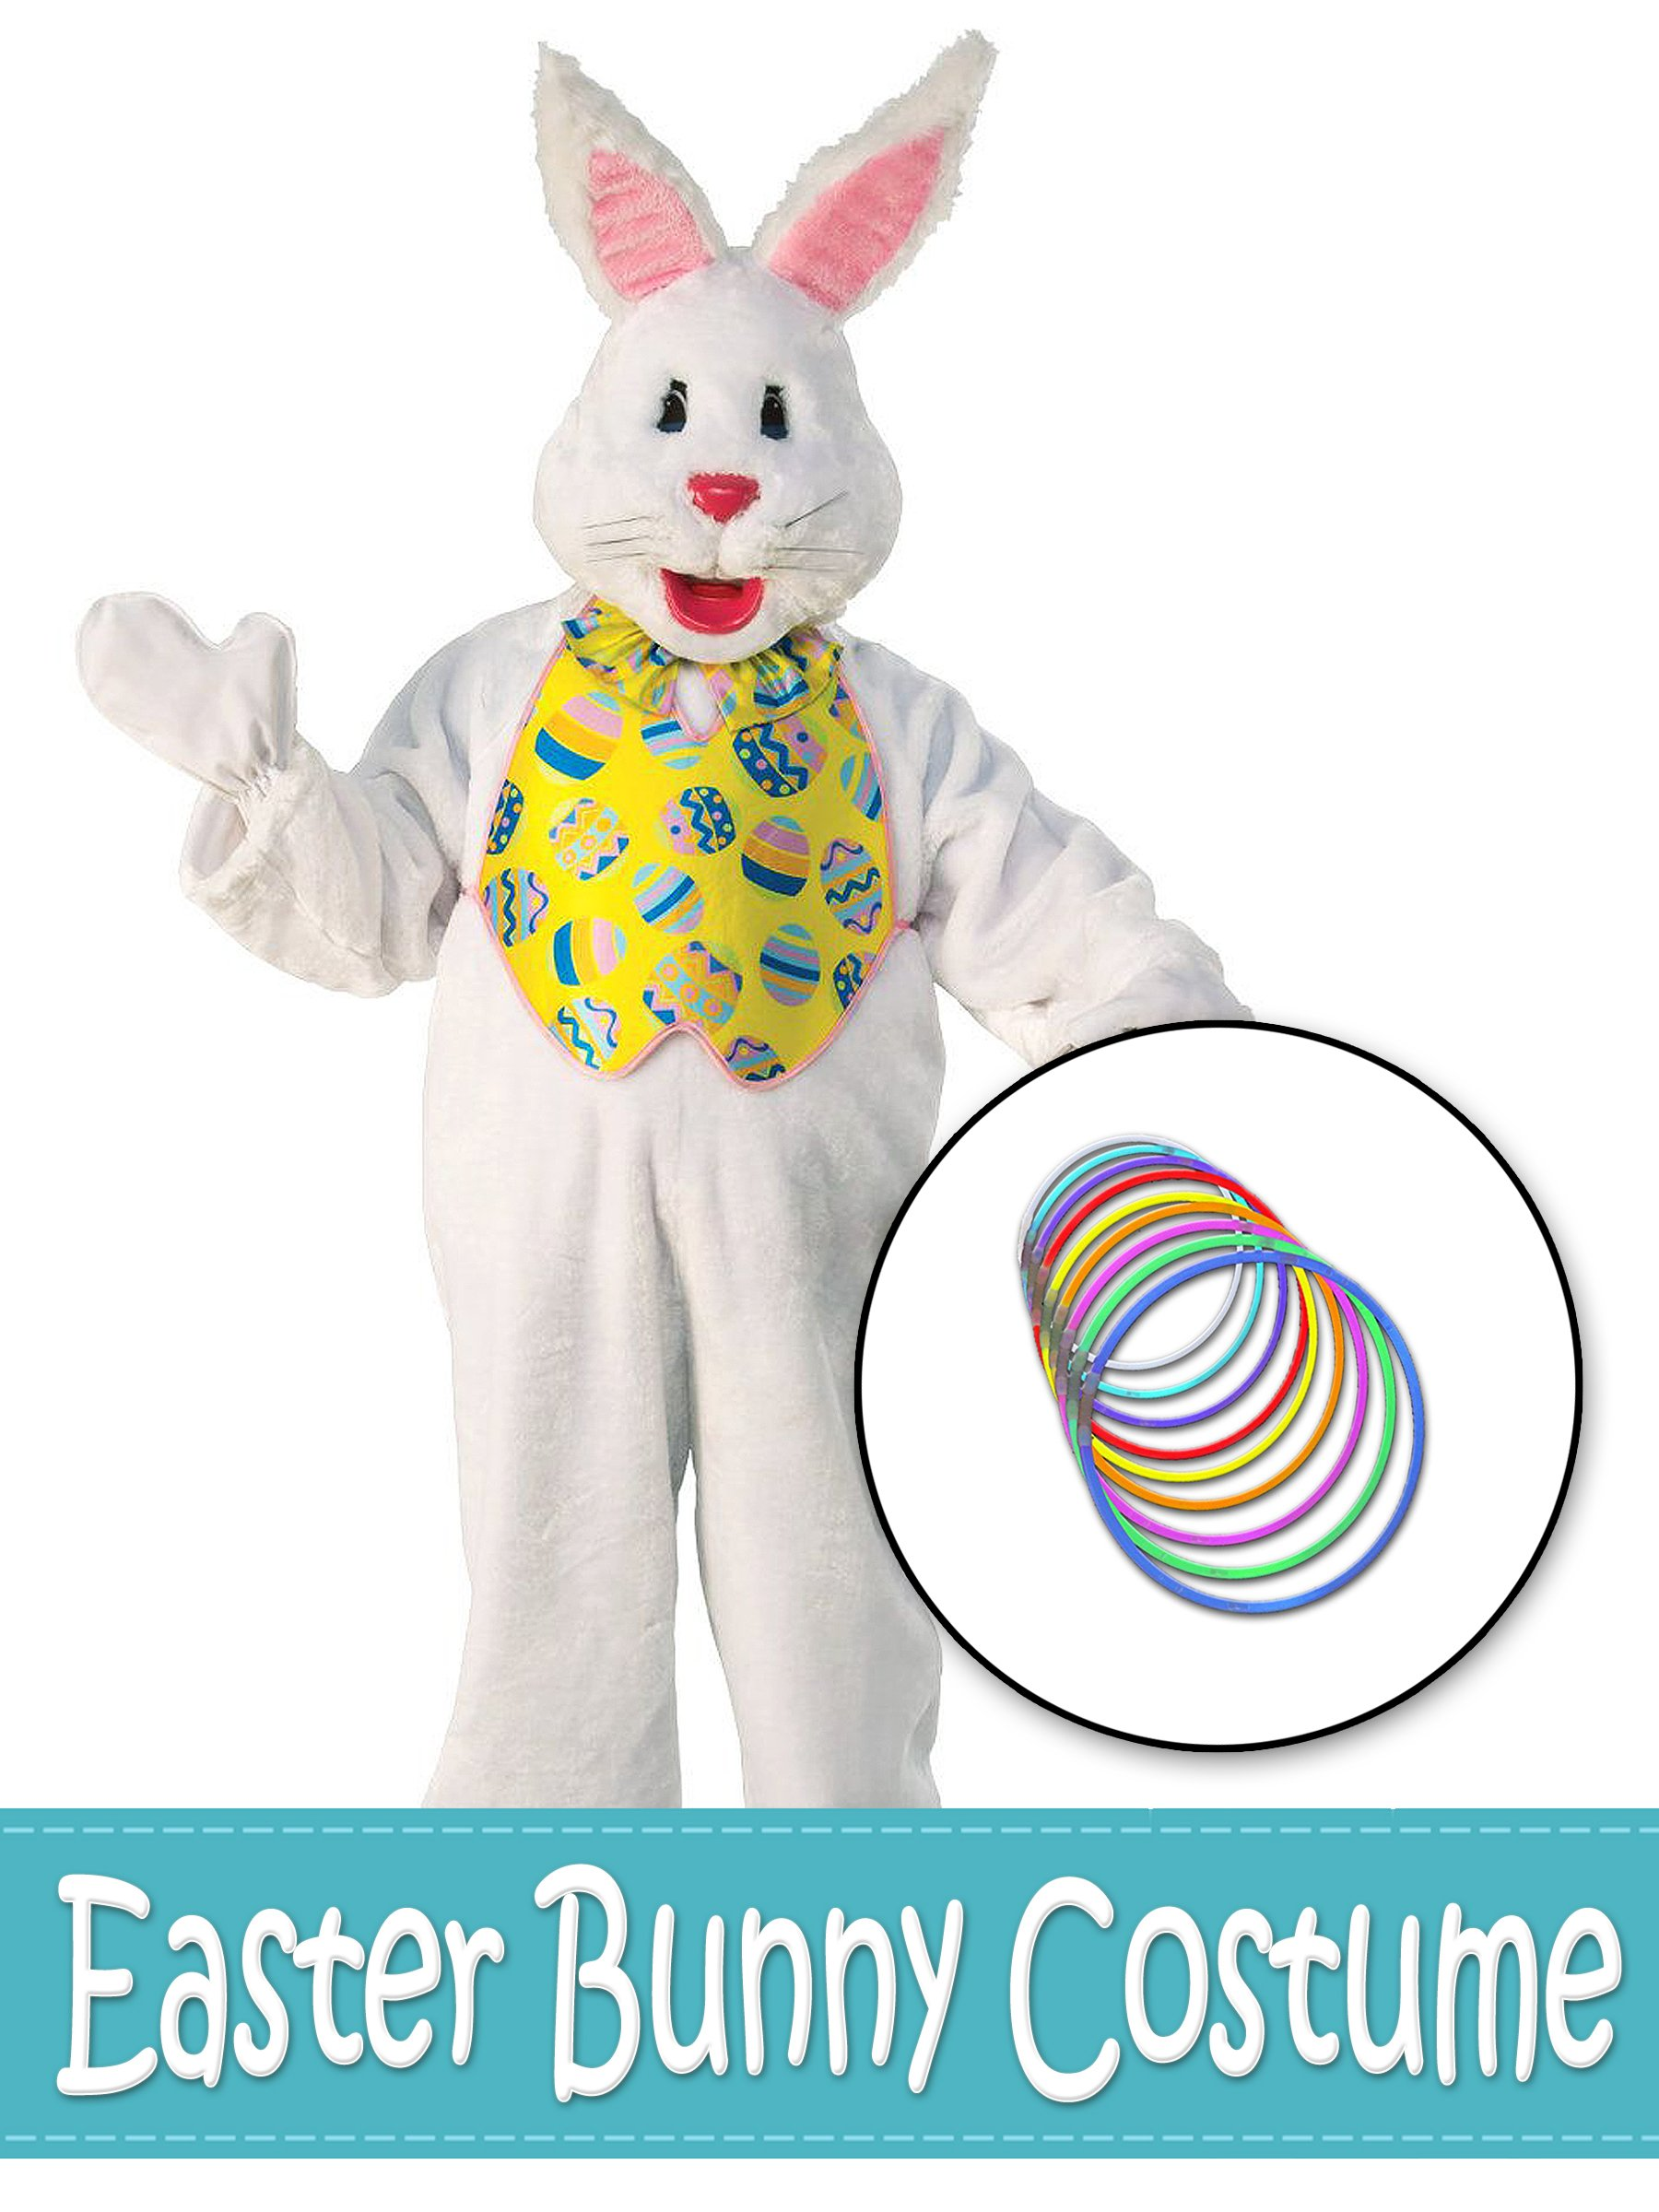 Easter Bunny Mascot With Yellow Vest and Glow Necklaces Costume Kit - Standard